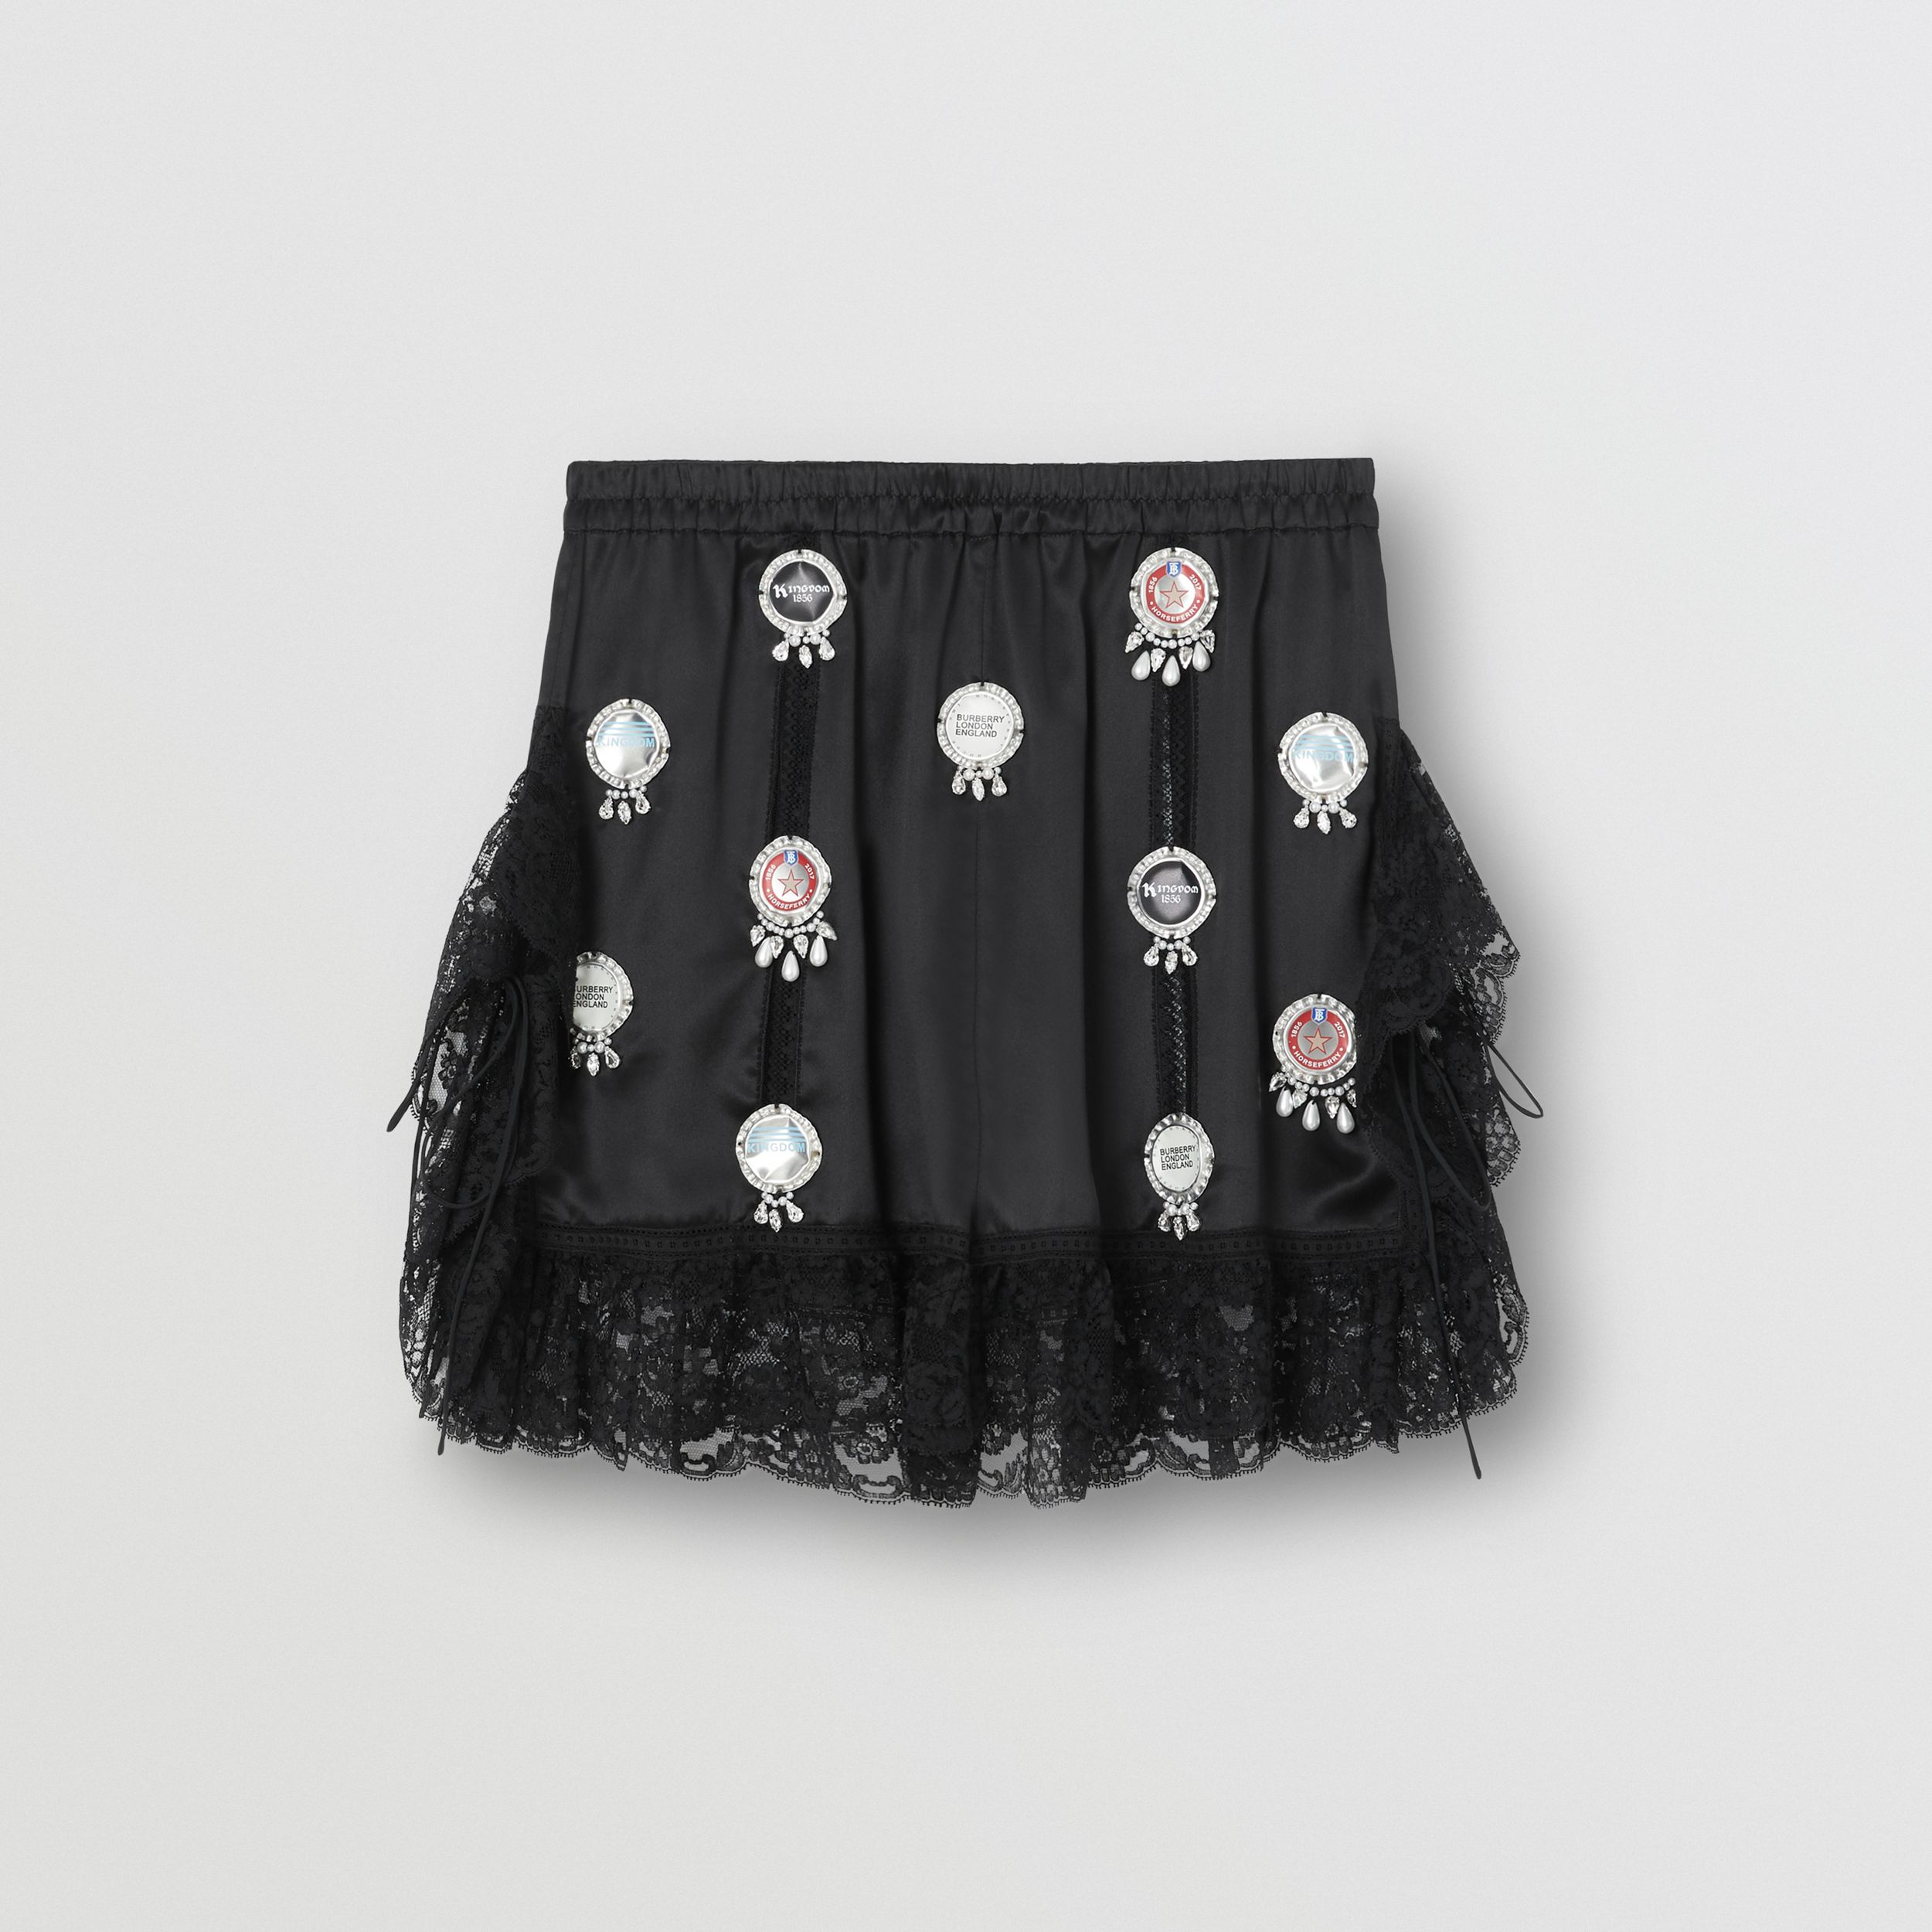 Bottle Cap Detail Satin and Lace Shorts in Black - Women | Burberry - 4